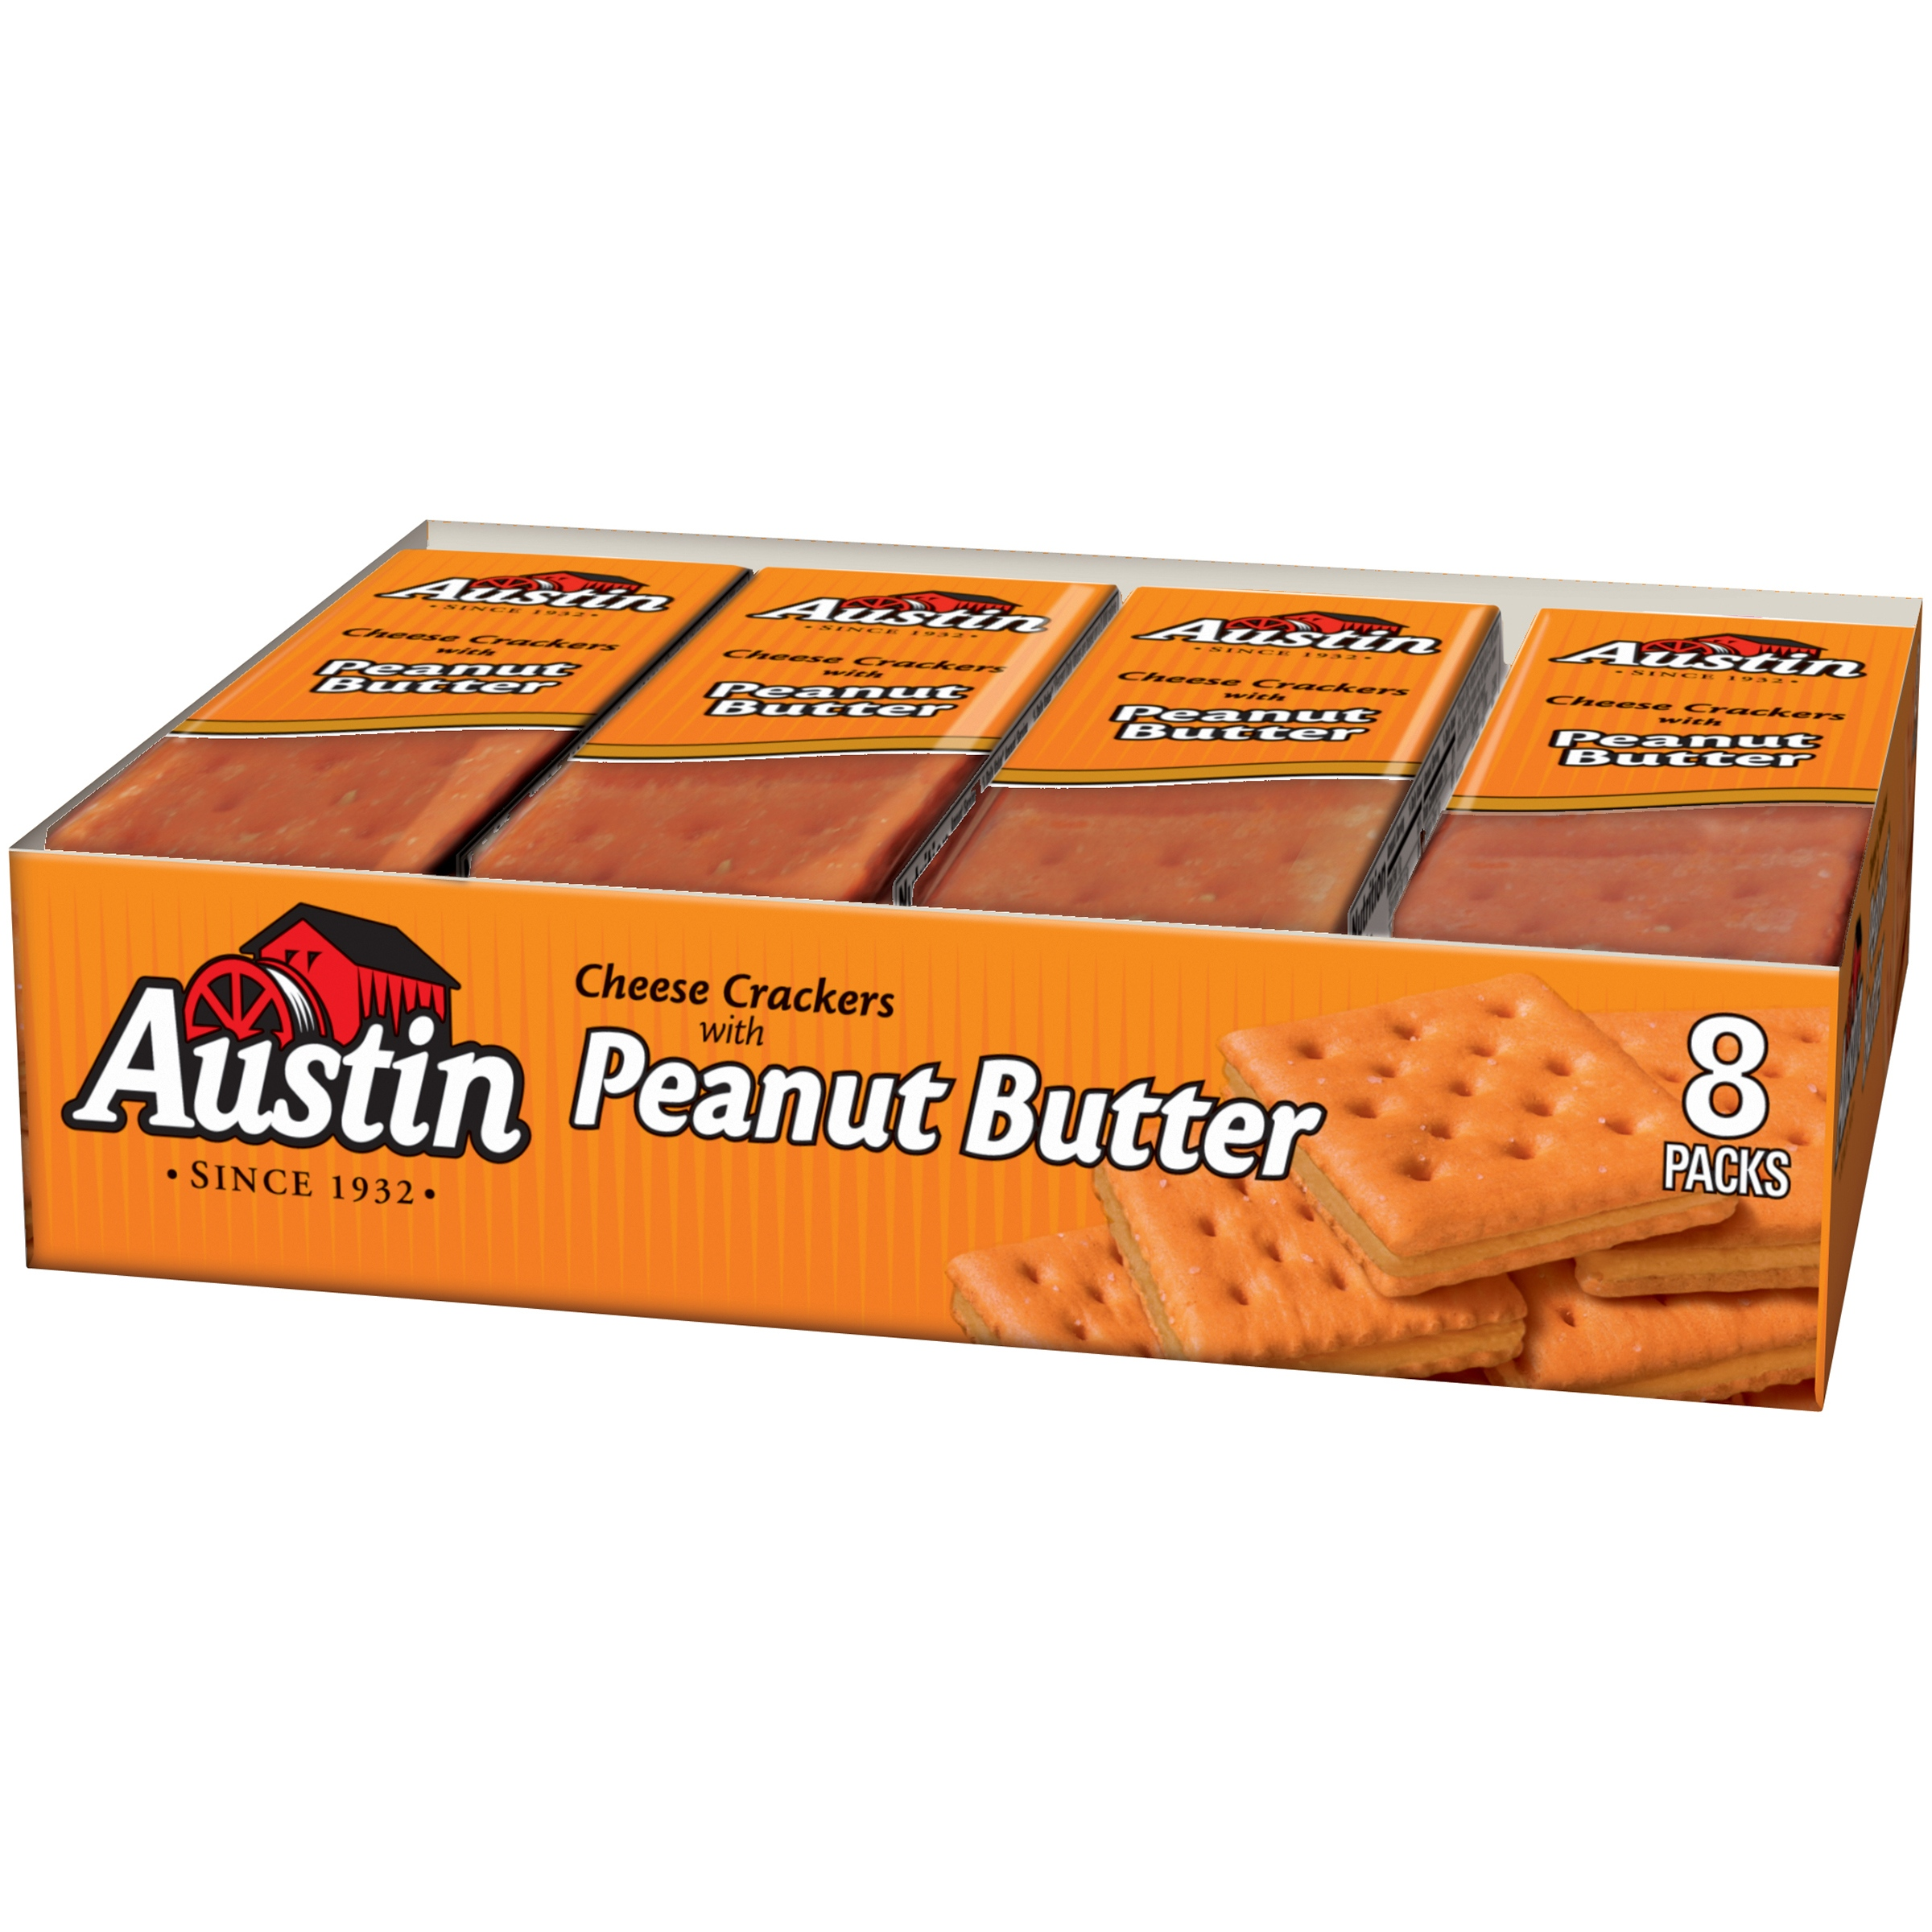 Austin Cheese Crackers with Peanut Butter, 1.38 oz, 8 pack by Wal-Mart Stores, Inc.